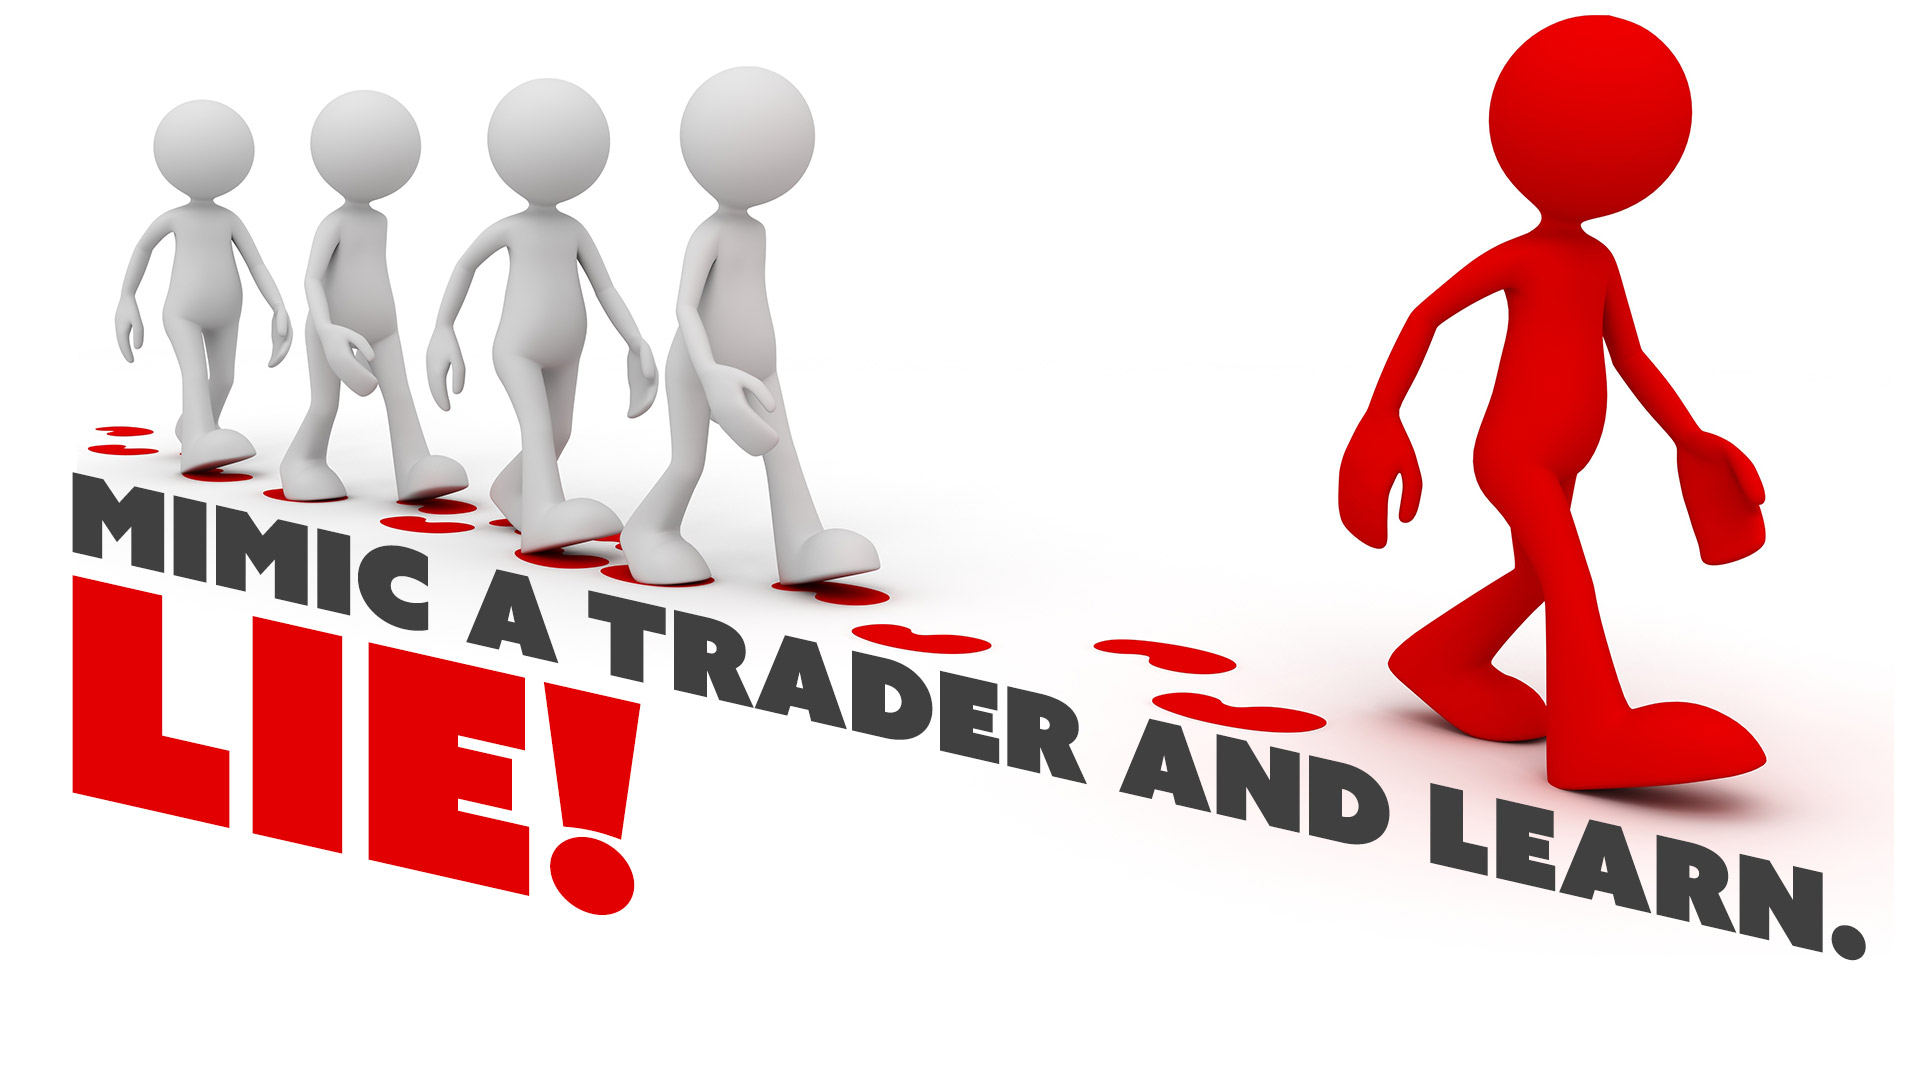 Mimic a Trader and Learn. Lie!